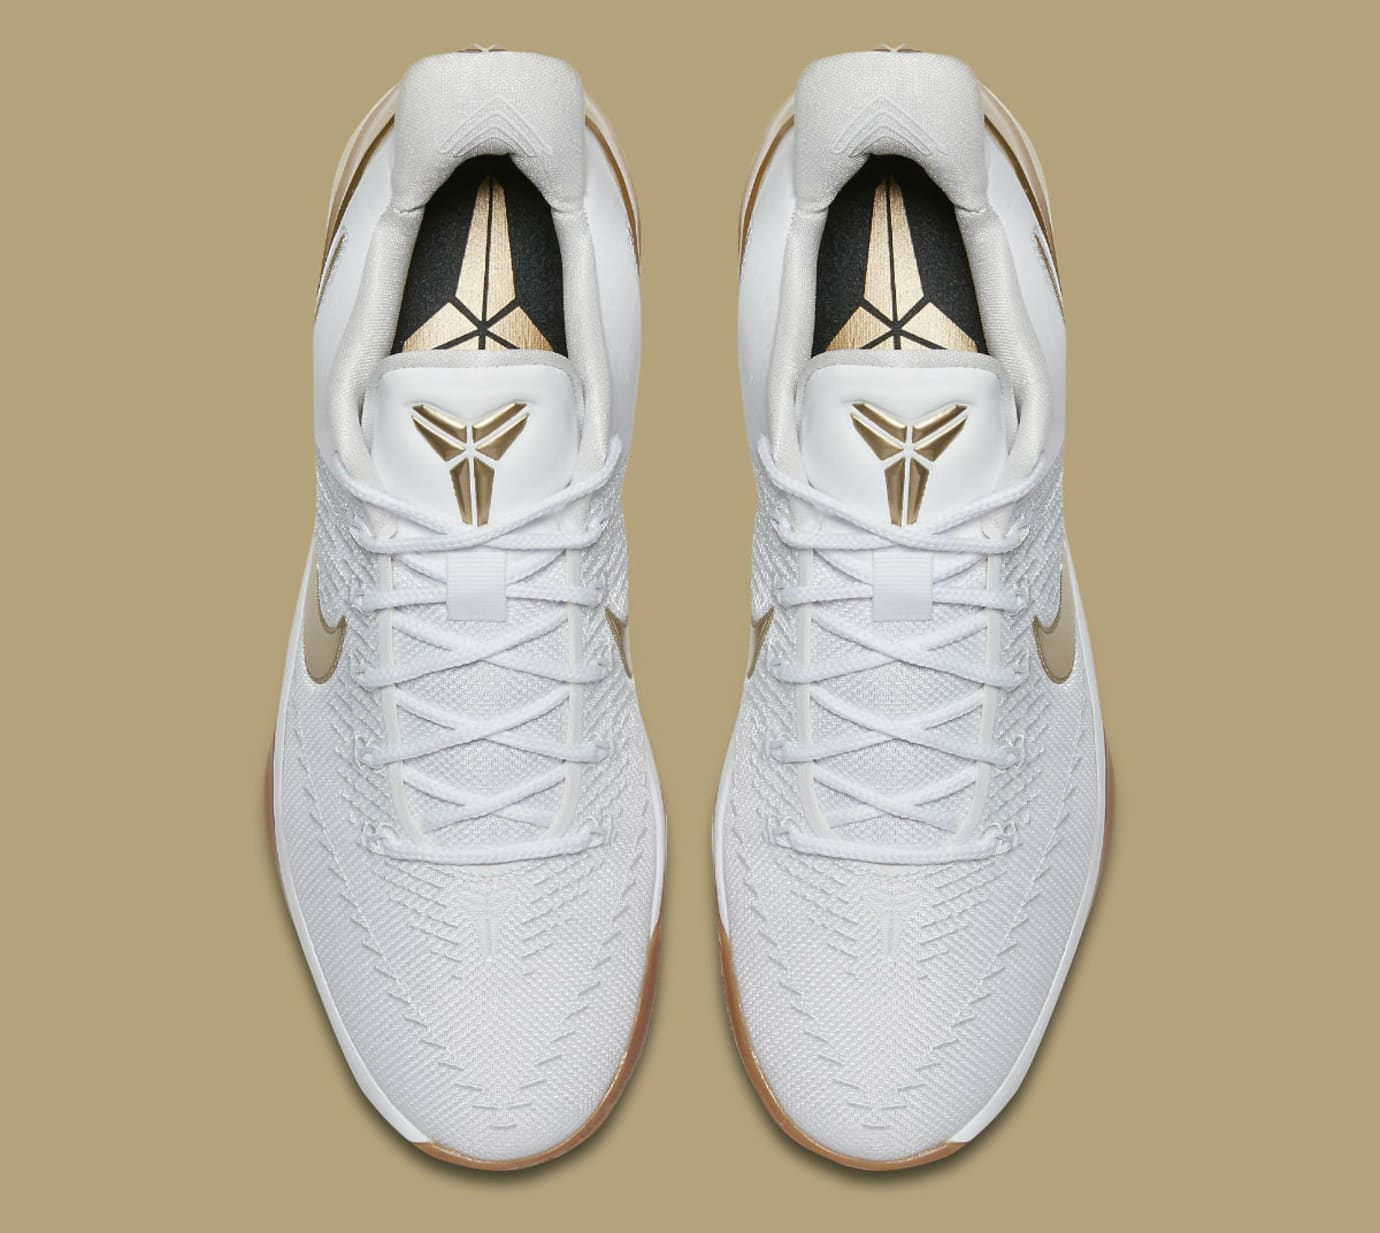 51283f243128 Nike LeBron Soldier 11 White Metallic Gold Black Release Date Top 852425-107